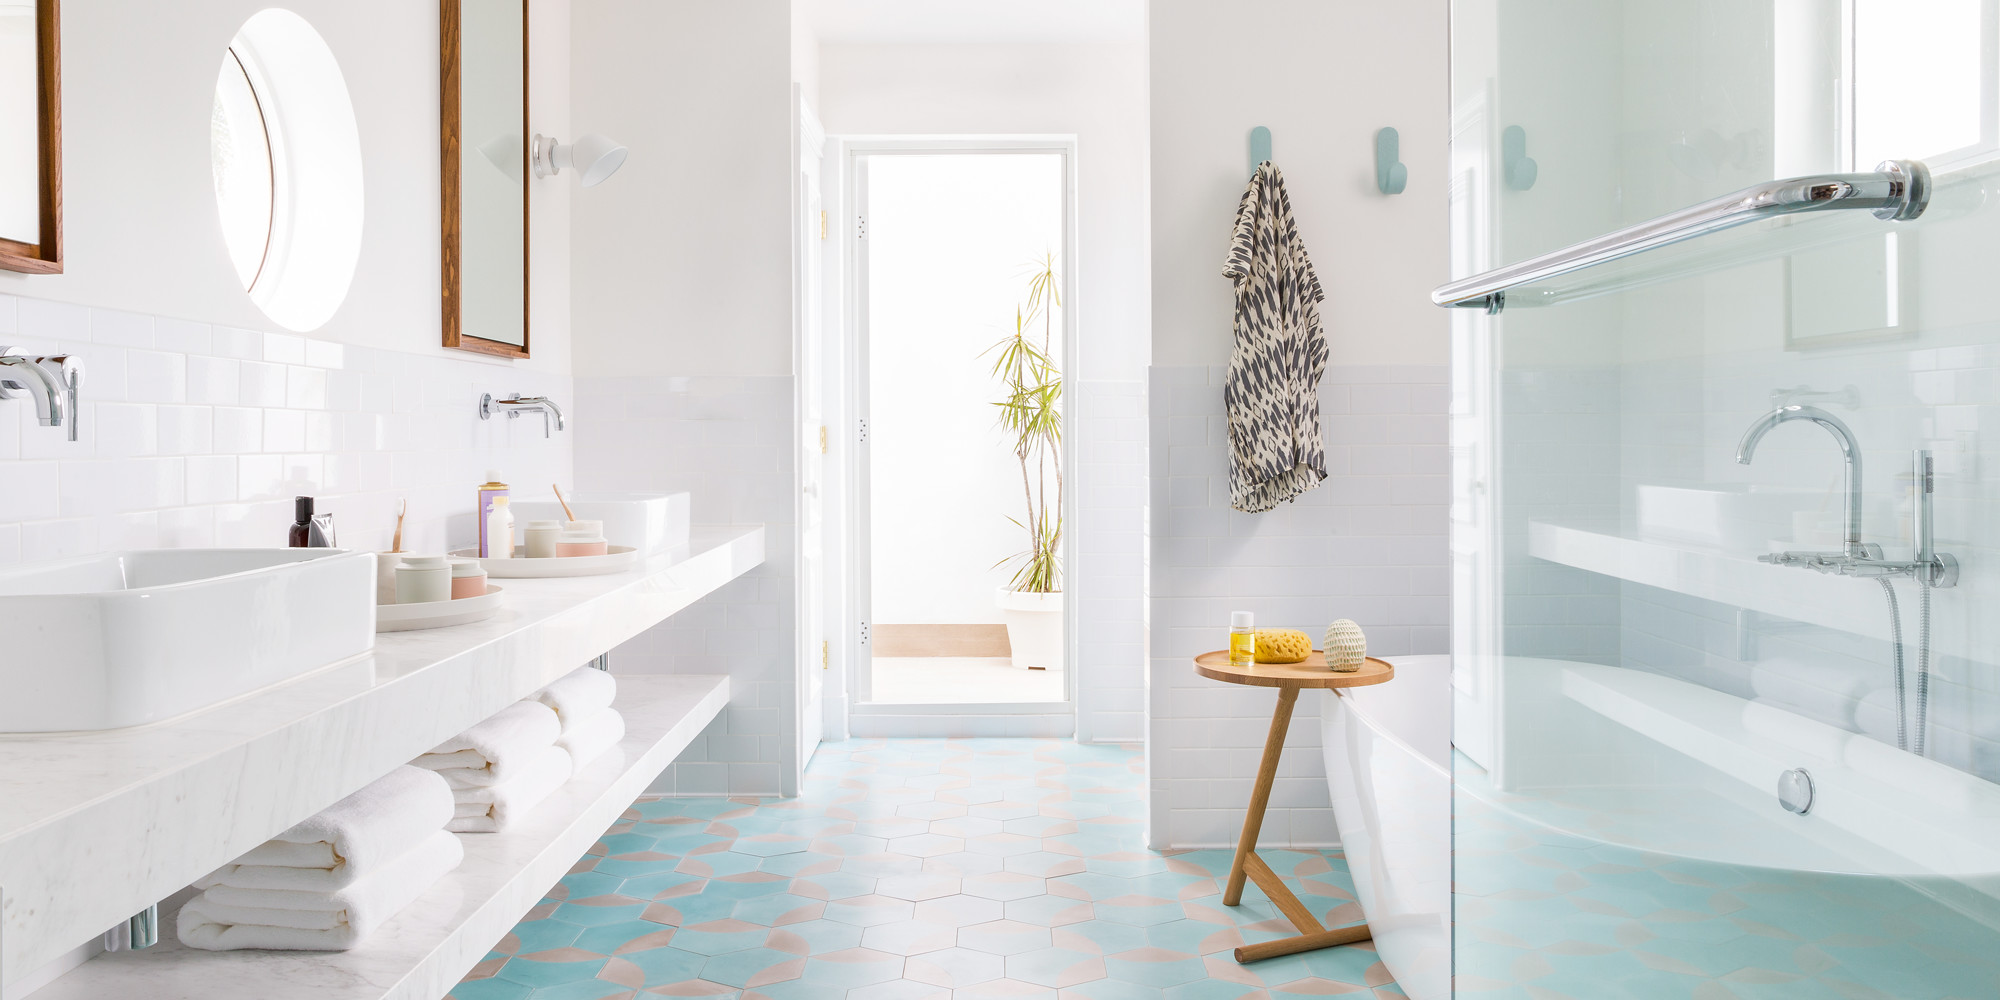 Unique Bathroom Tile Ideas You've Probably Never Seen - Lonny